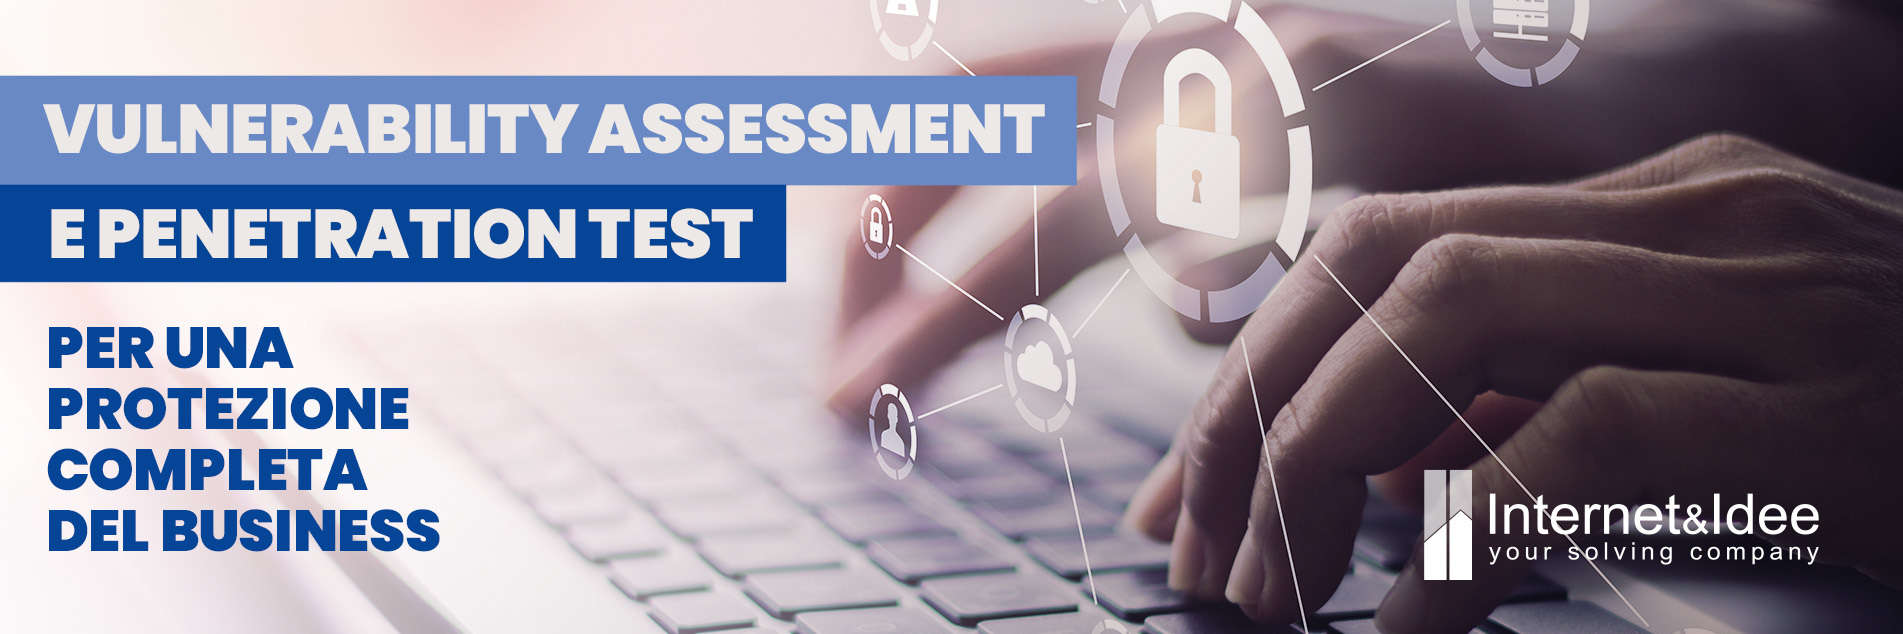 Vulnerability Assessment e Penetration Test per la sicurezza del business